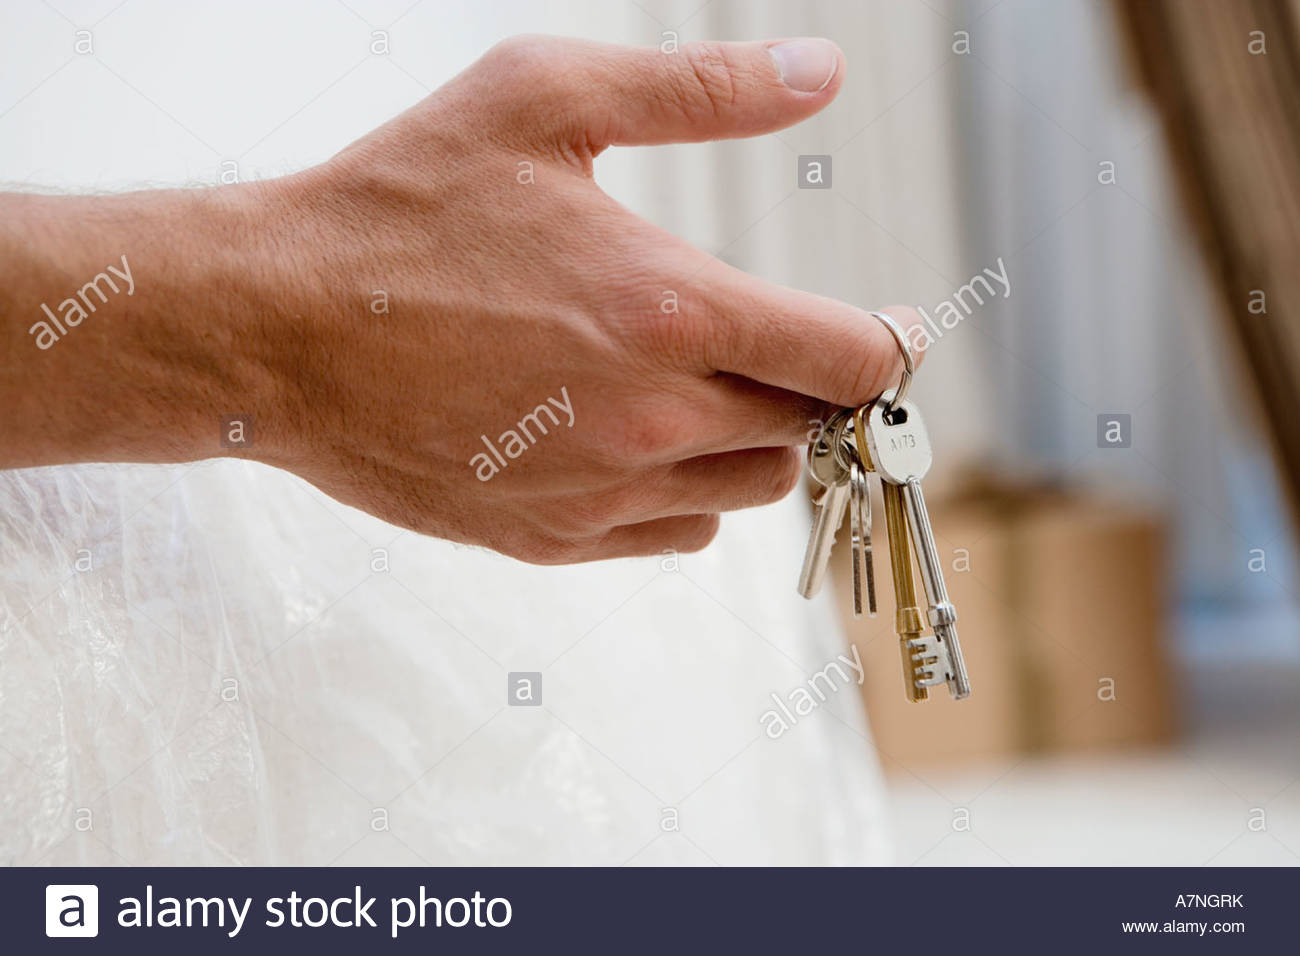 Man holding set of keys close up of hand side view - Stock Image